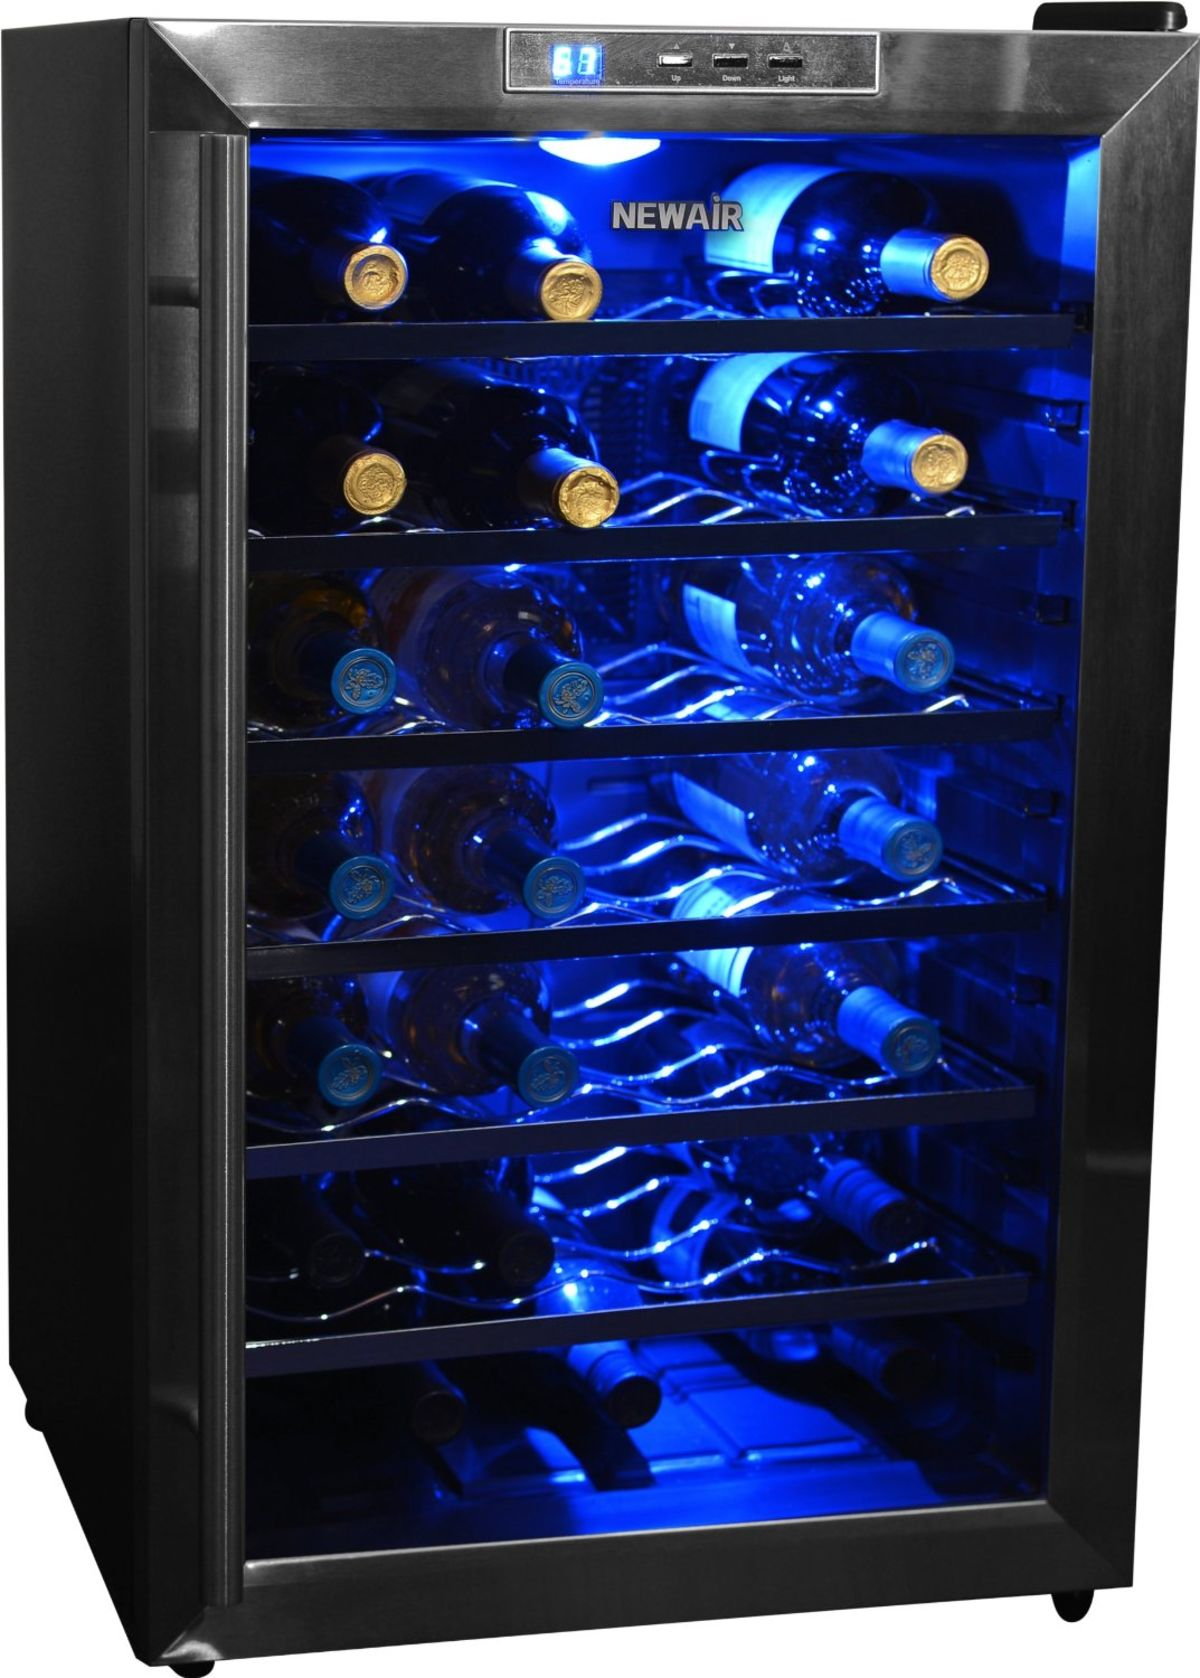 Headline for Best Thermoelectric Wine Bottle Cooler Reviews 2015